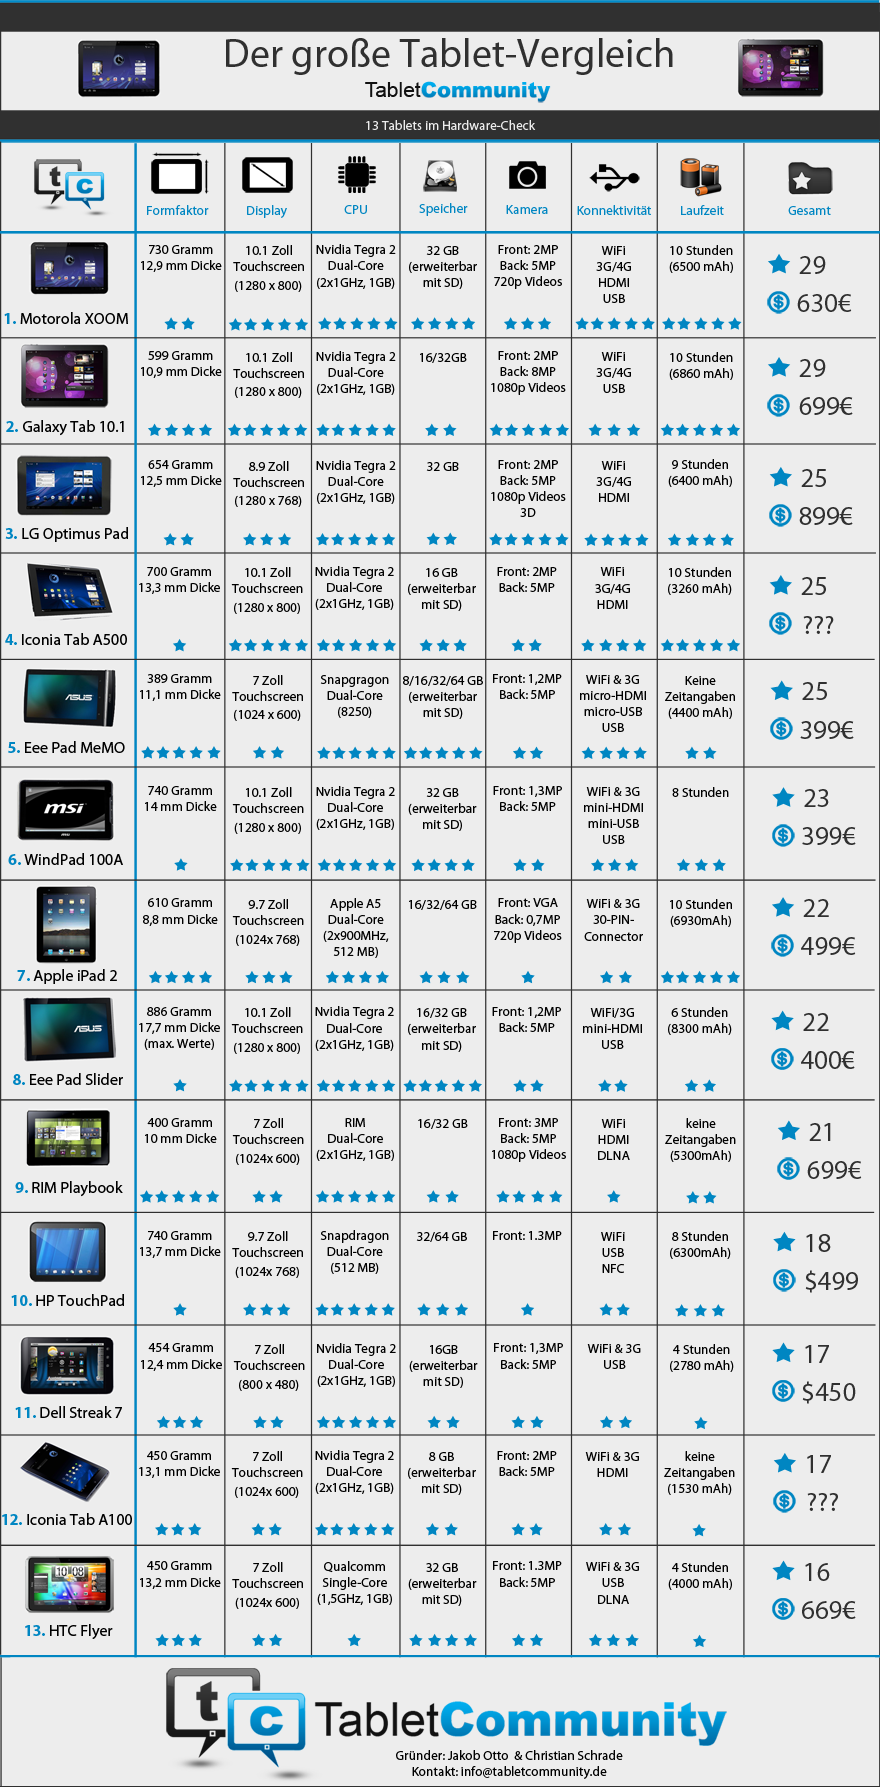 galaxy tab 10 1 vs ipad 2 vs motorola xoom vergleich. Black Bedroom Furniture Sets. Home Design Ideas